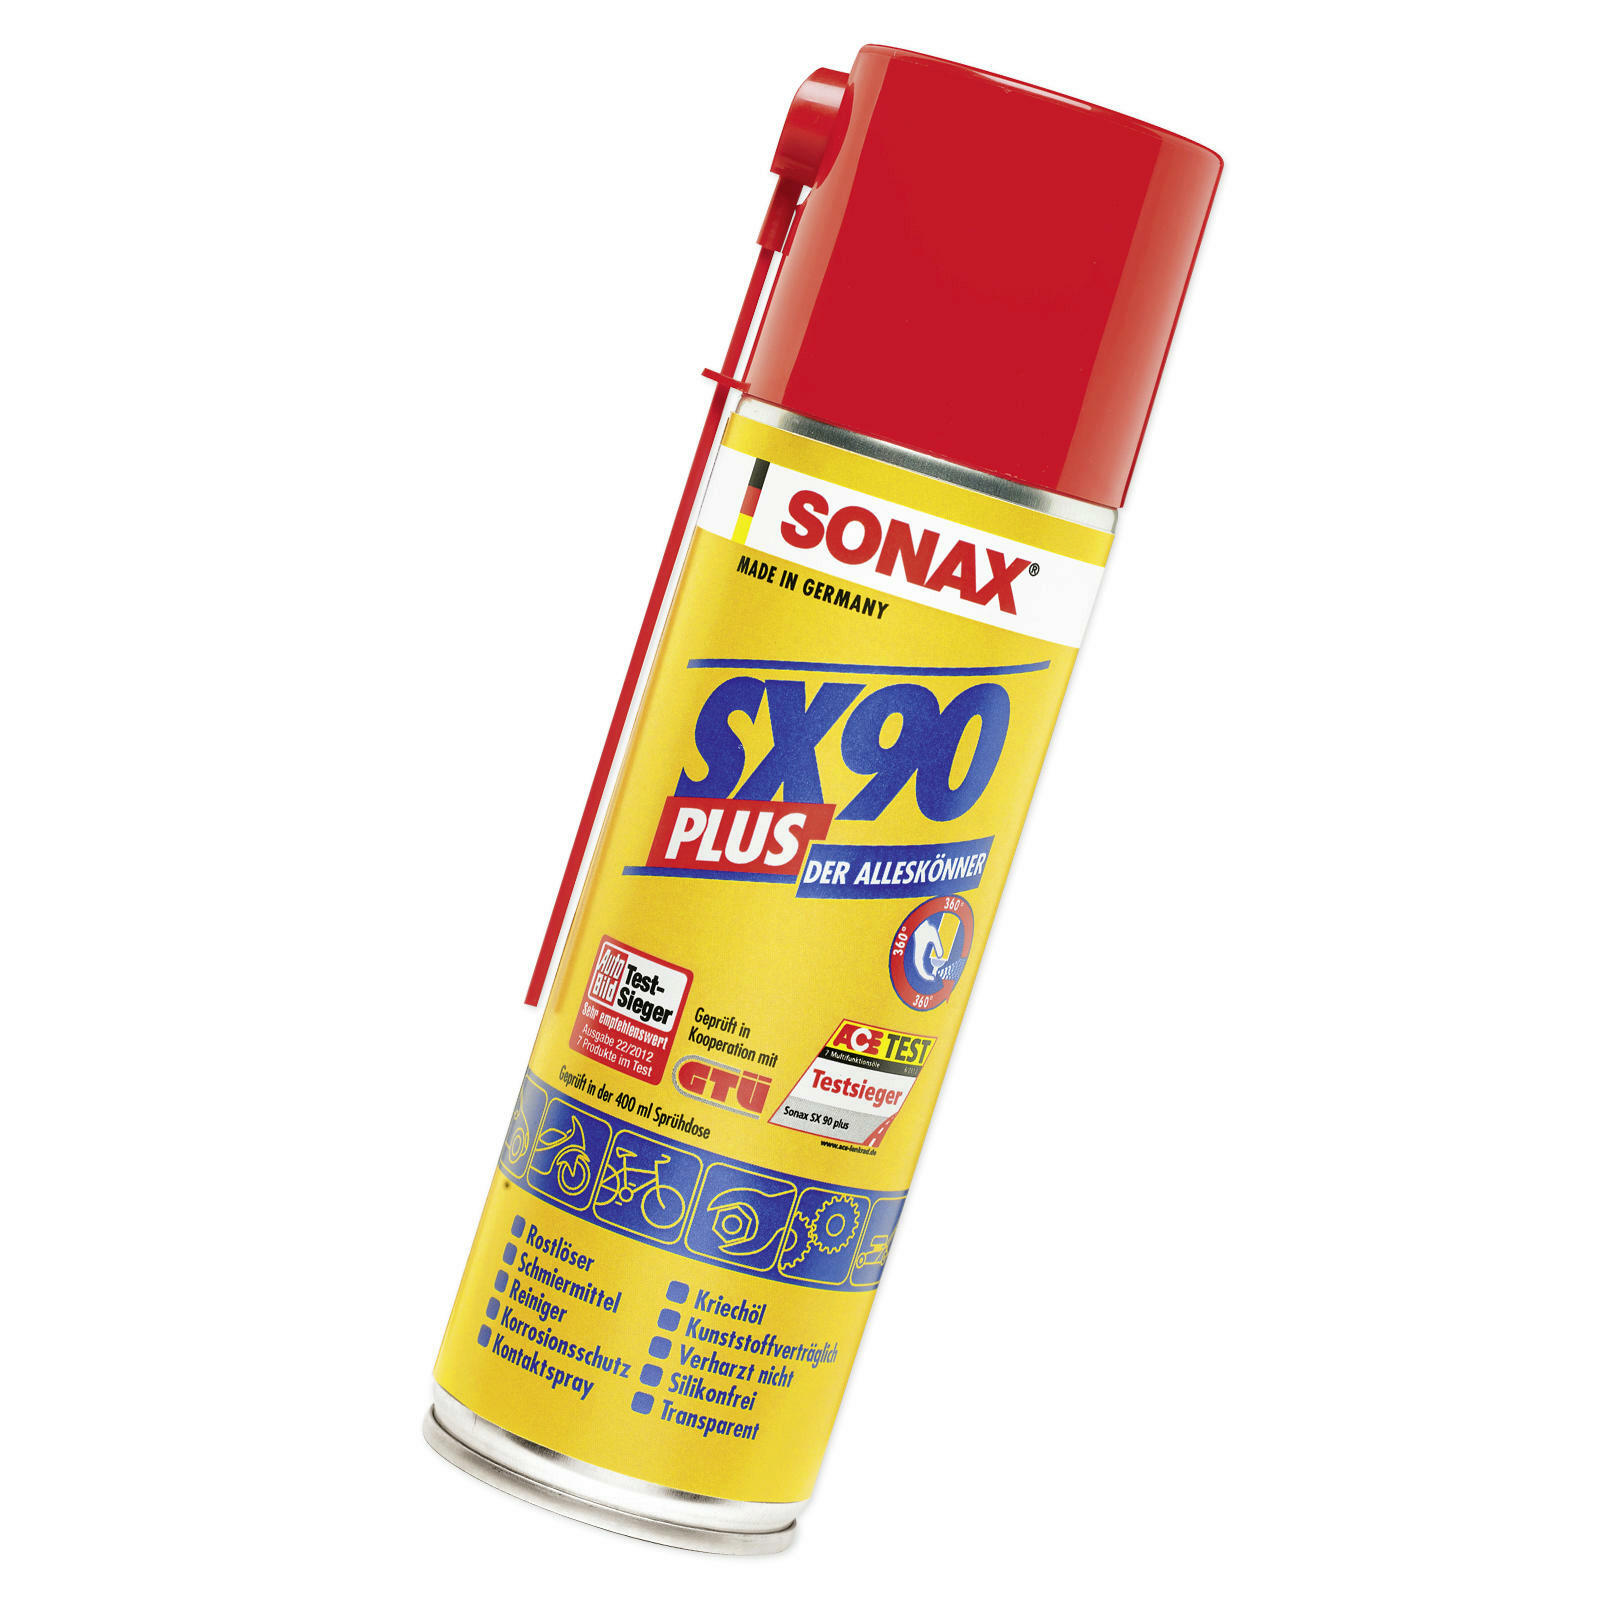 SONAX SX90 PLUS 300ml